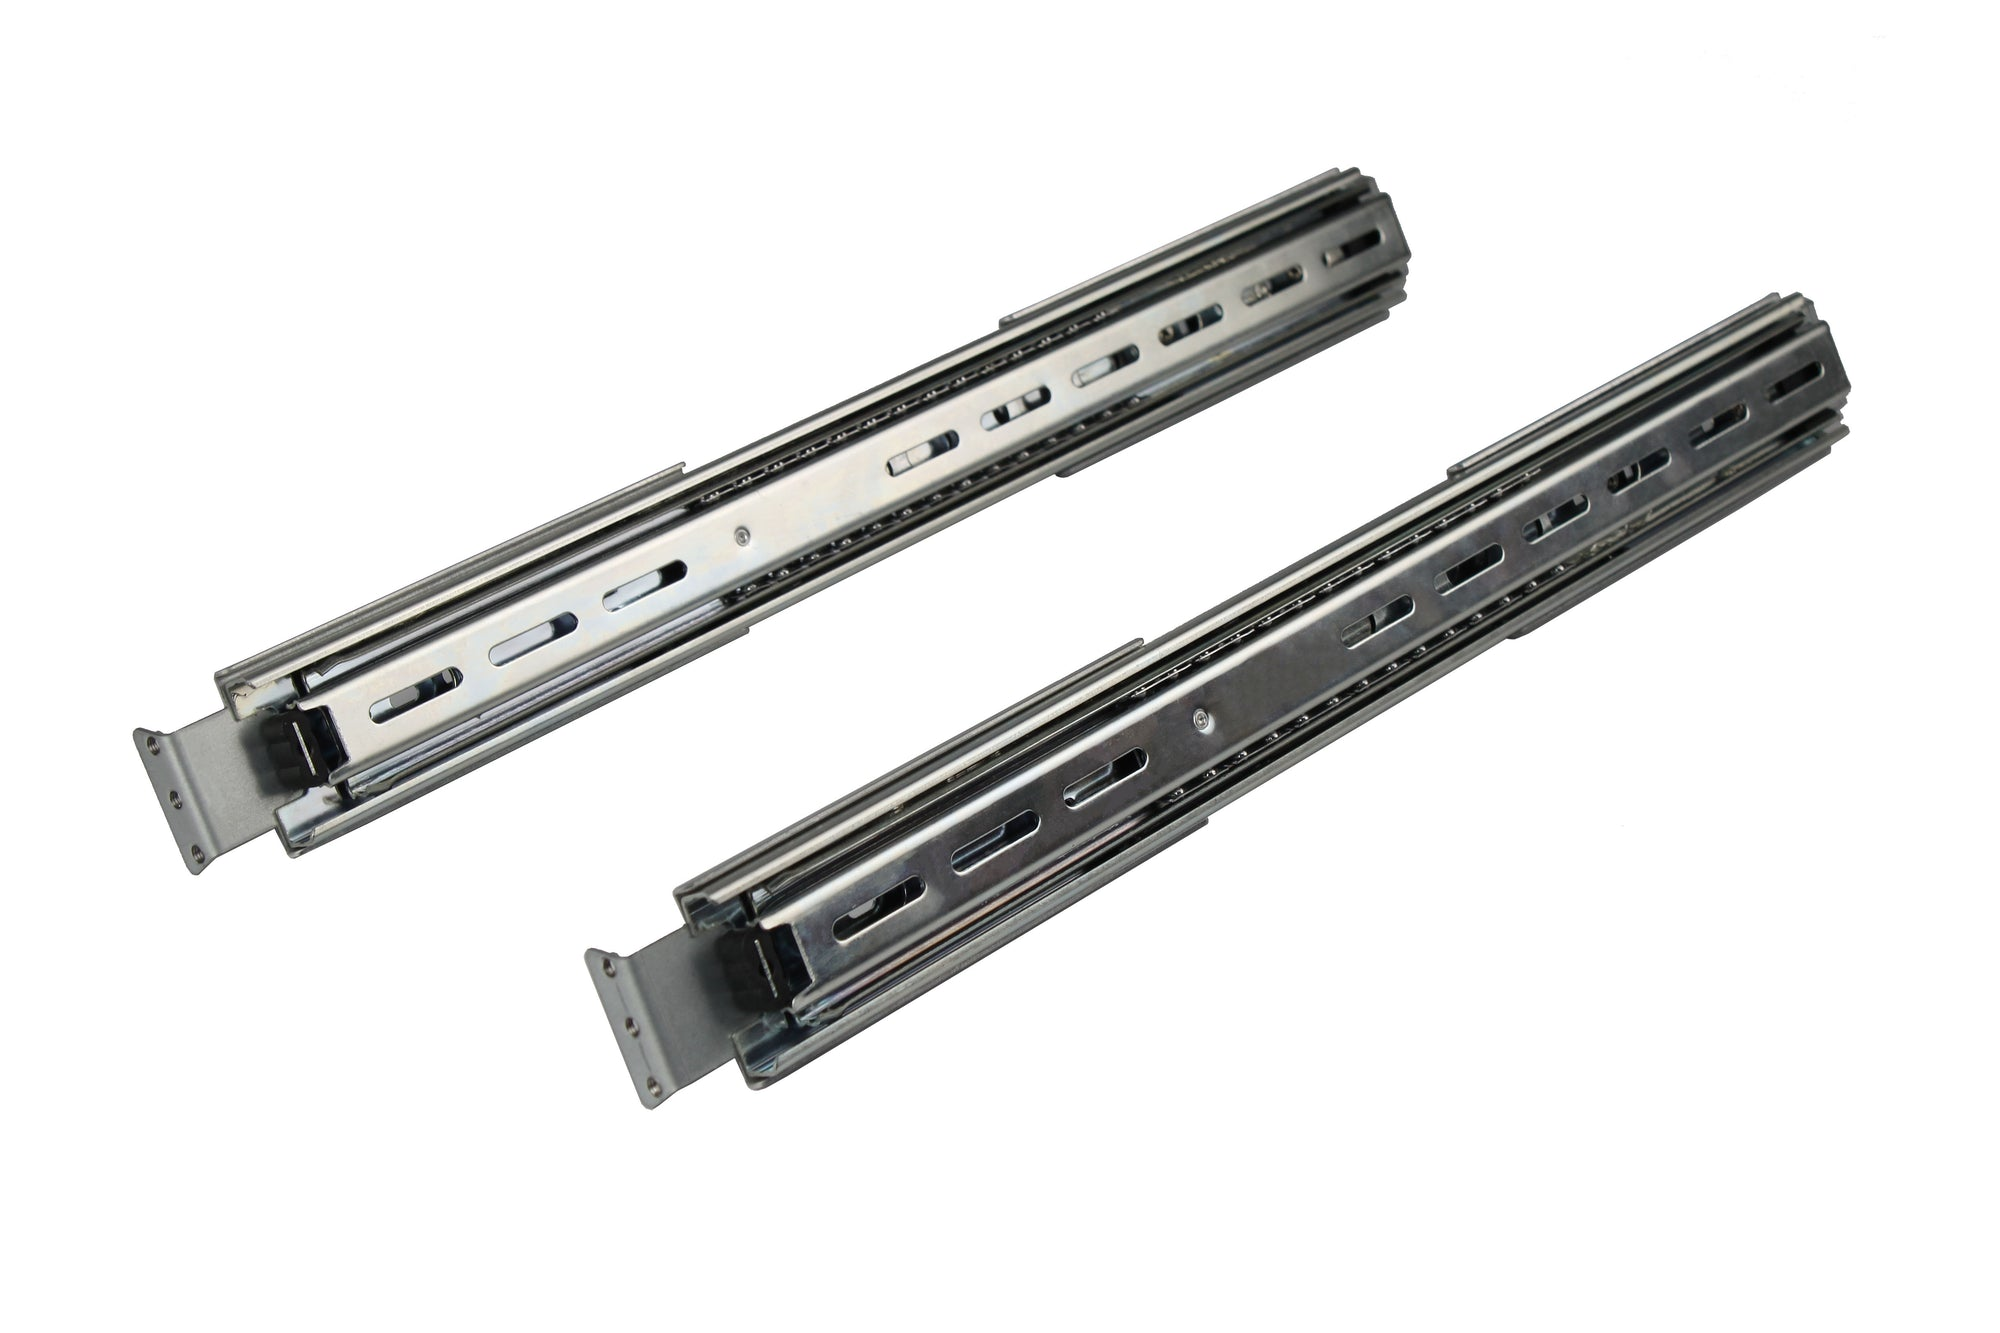 "RackPc Rail Kit 26"" - X-Case.co.uk Ltd"